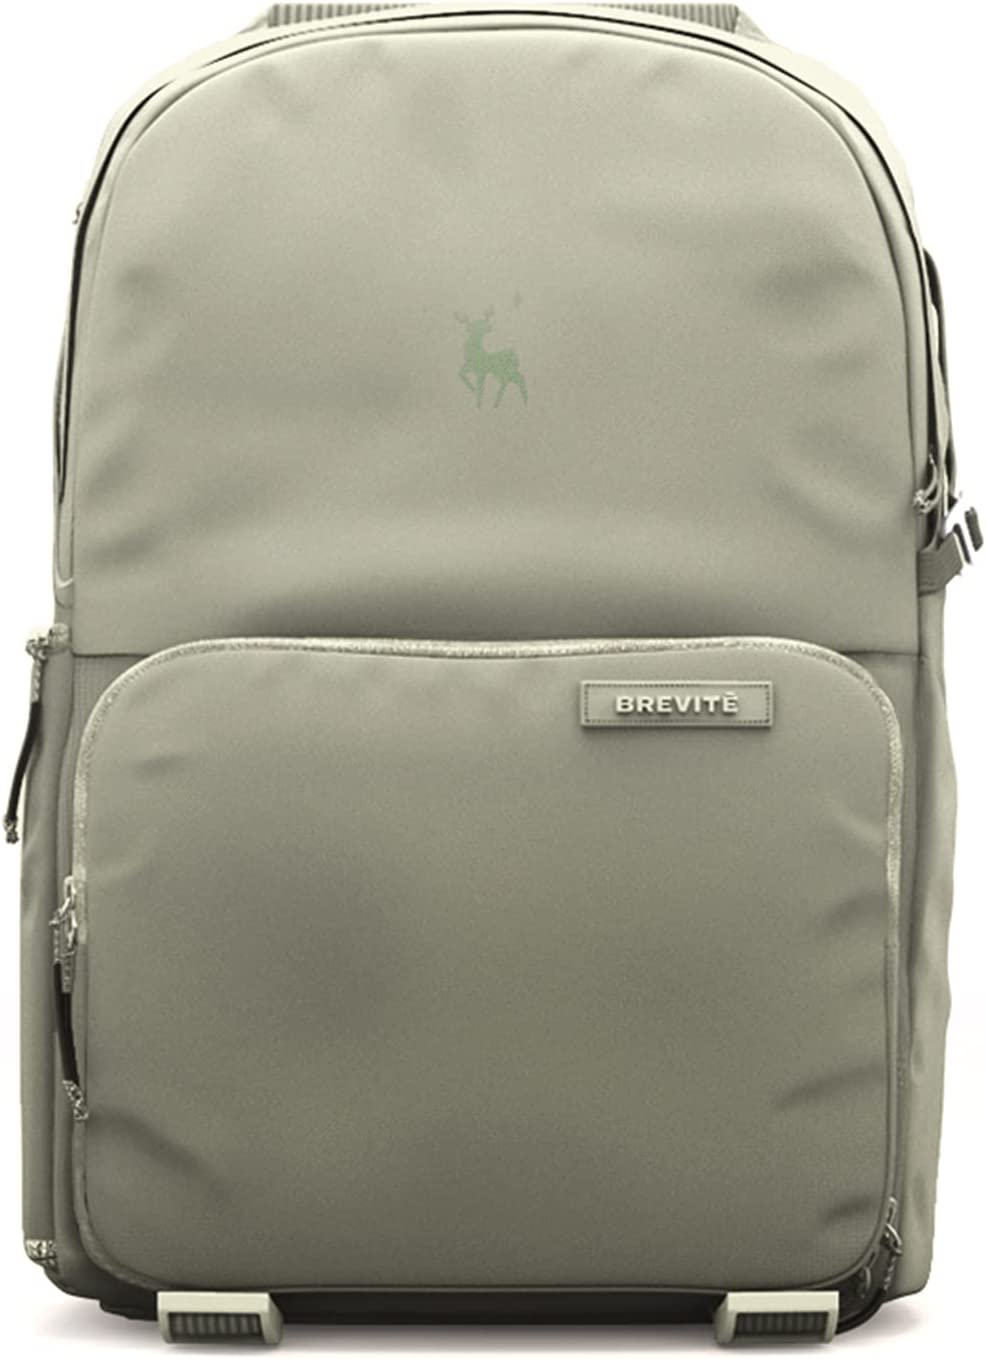 Brevite Jumper Photo Compact Camera Backpack: A Minimalist & Travel-Friendly Photography Backpack Compatible with Both Laptop & DSLR Accessories 18L (Green)